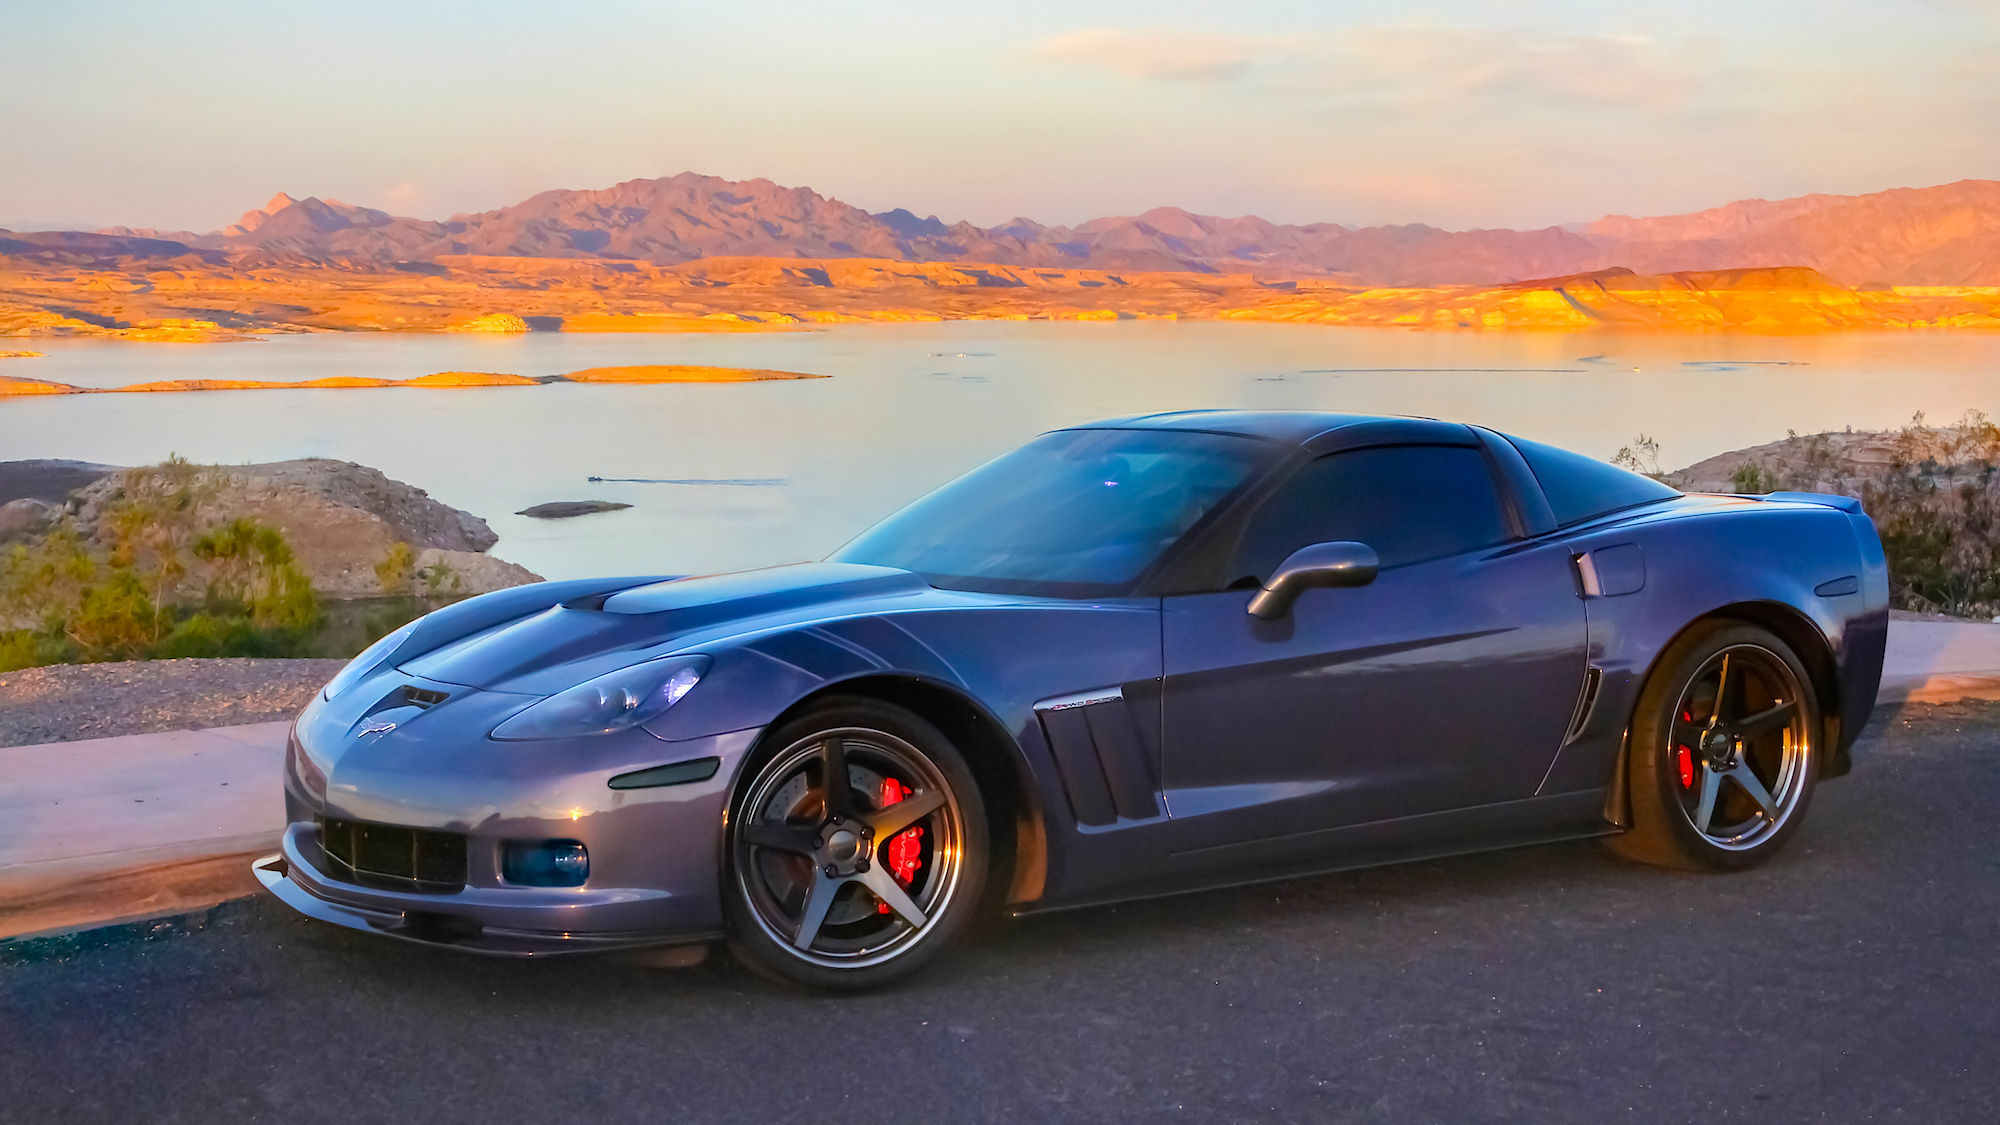 2013 Chevrolet Corvette | C6 Corvette on Forgeline CF3C-SL Wheels